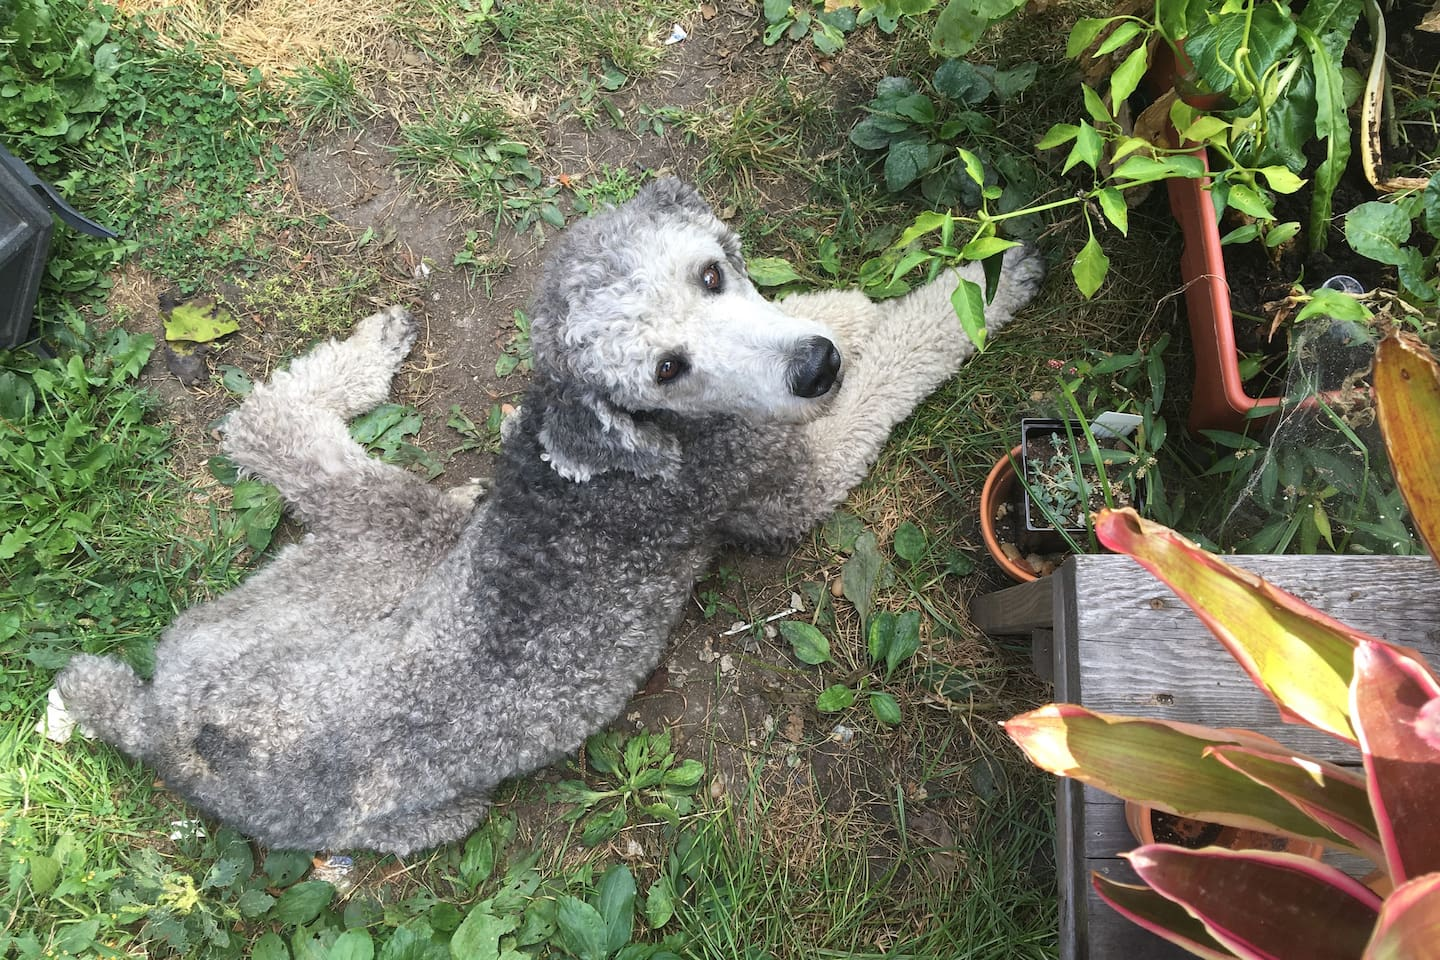 We have two standard poodles that you'll regularly find napping or play-fighting in the yard.